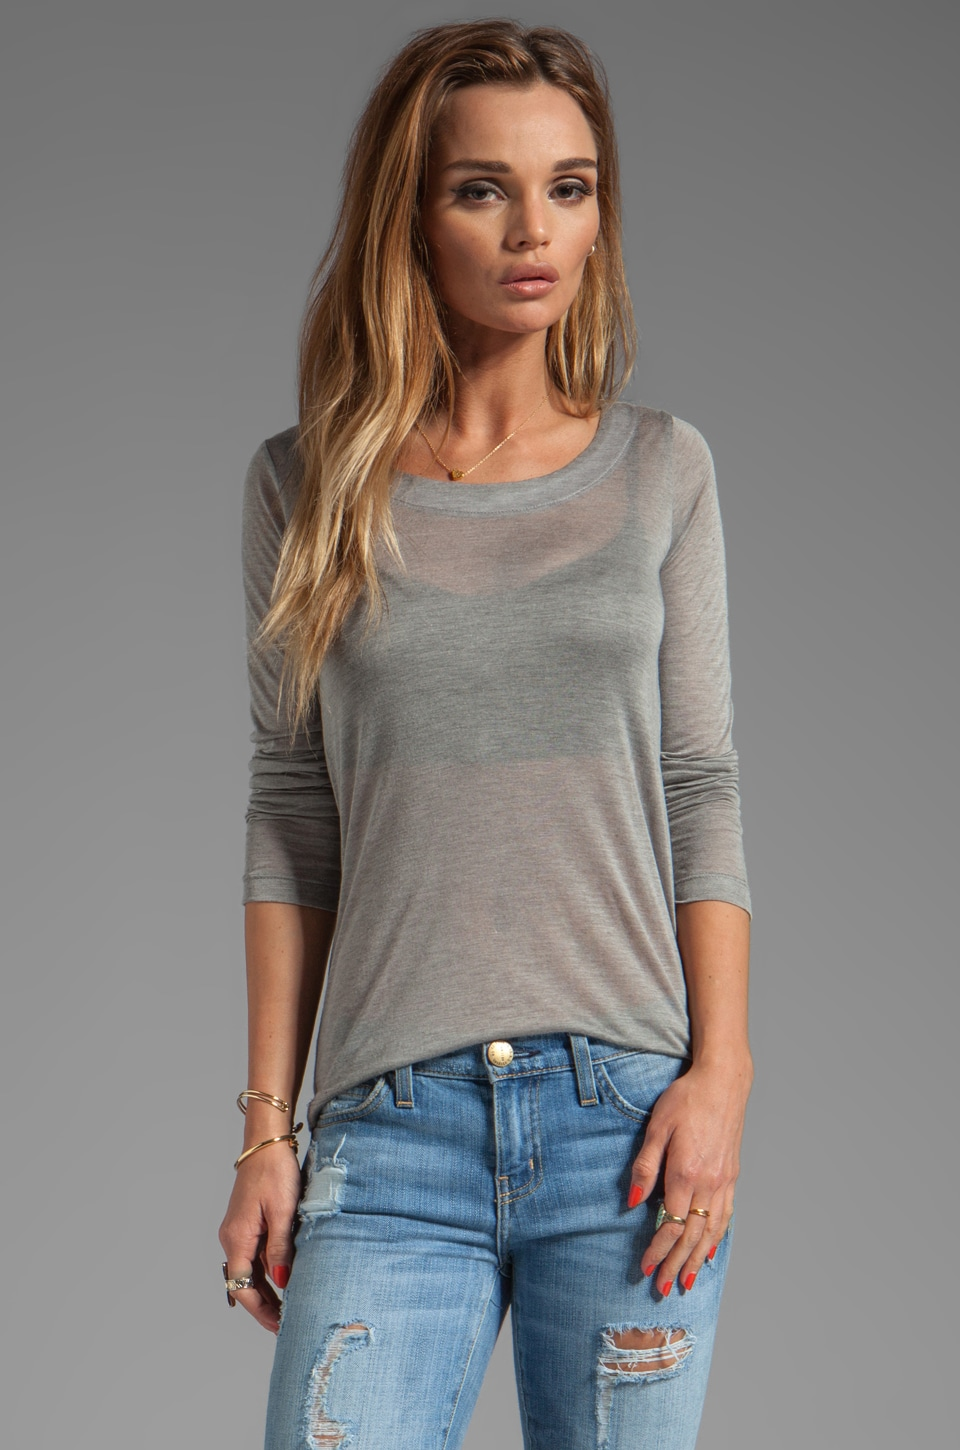 Kain Sheer Jersey Torrey Long Sleeve in Heather Grey